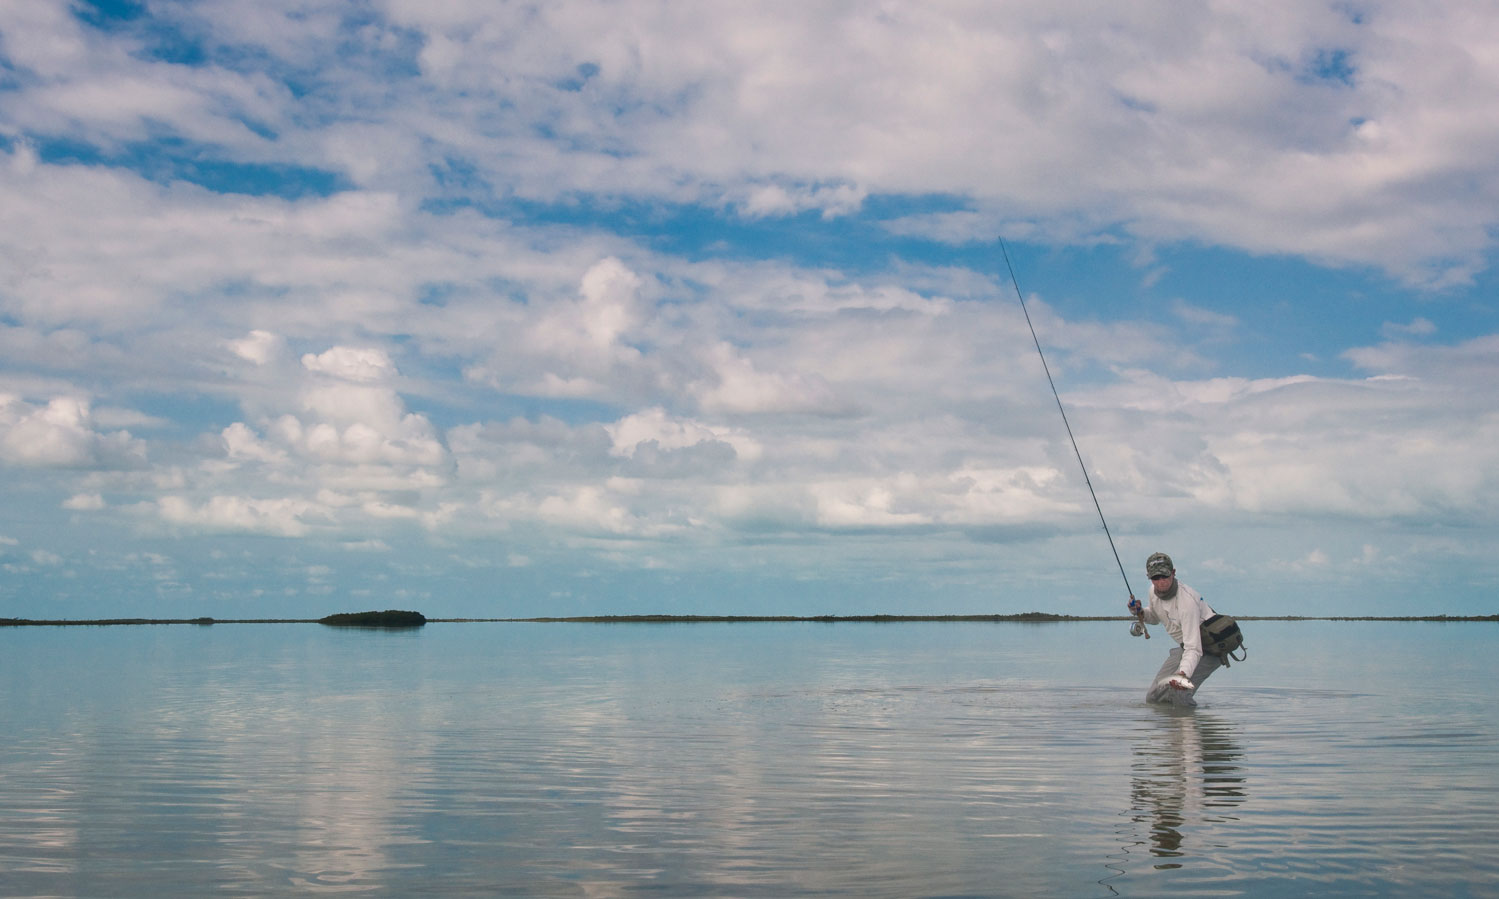 The road to diy bonefish fly fishing gink and gasoline how to photo by louis cahill solutioingenieria Images